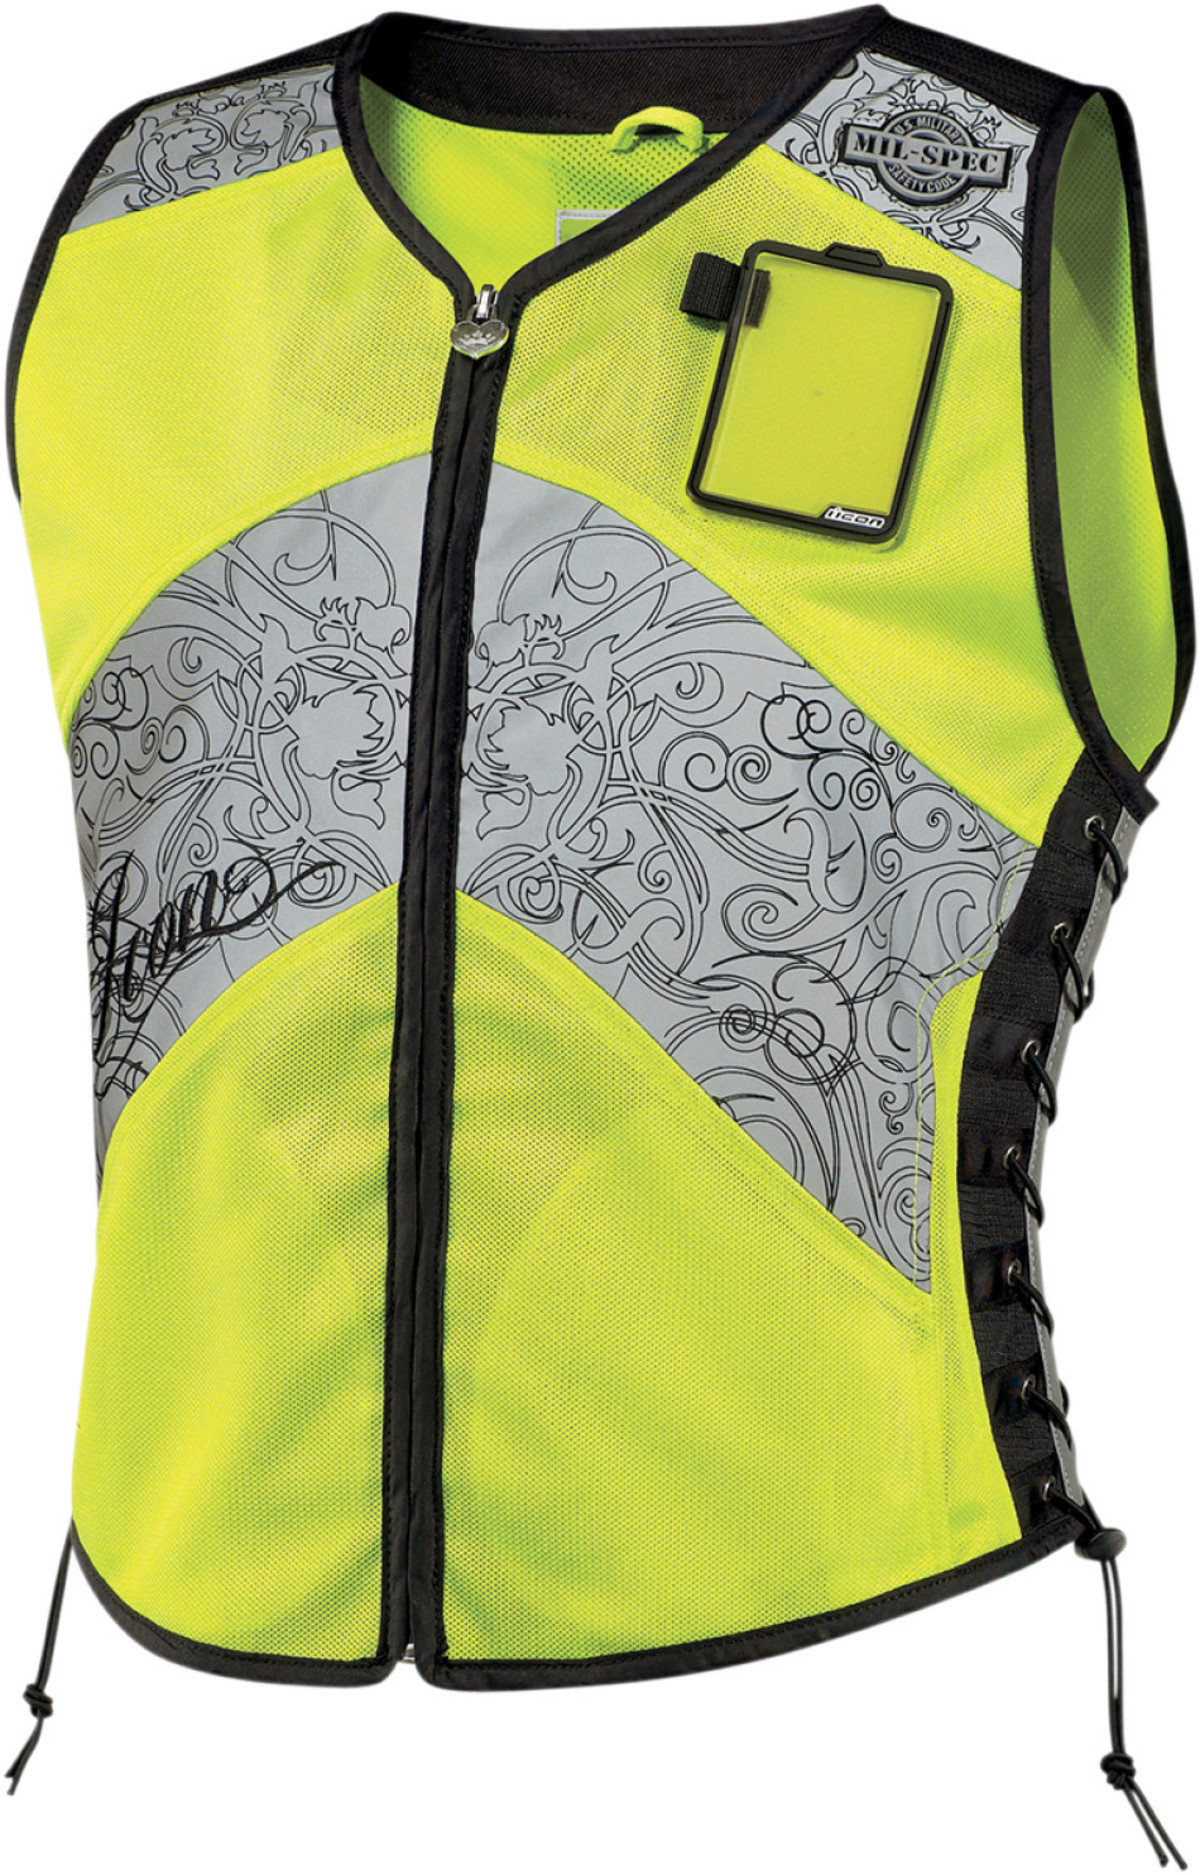 Motorcycle Reflective Vest Motorbike Safety Clothes High ... |Motorcycle Safety Vest Womens